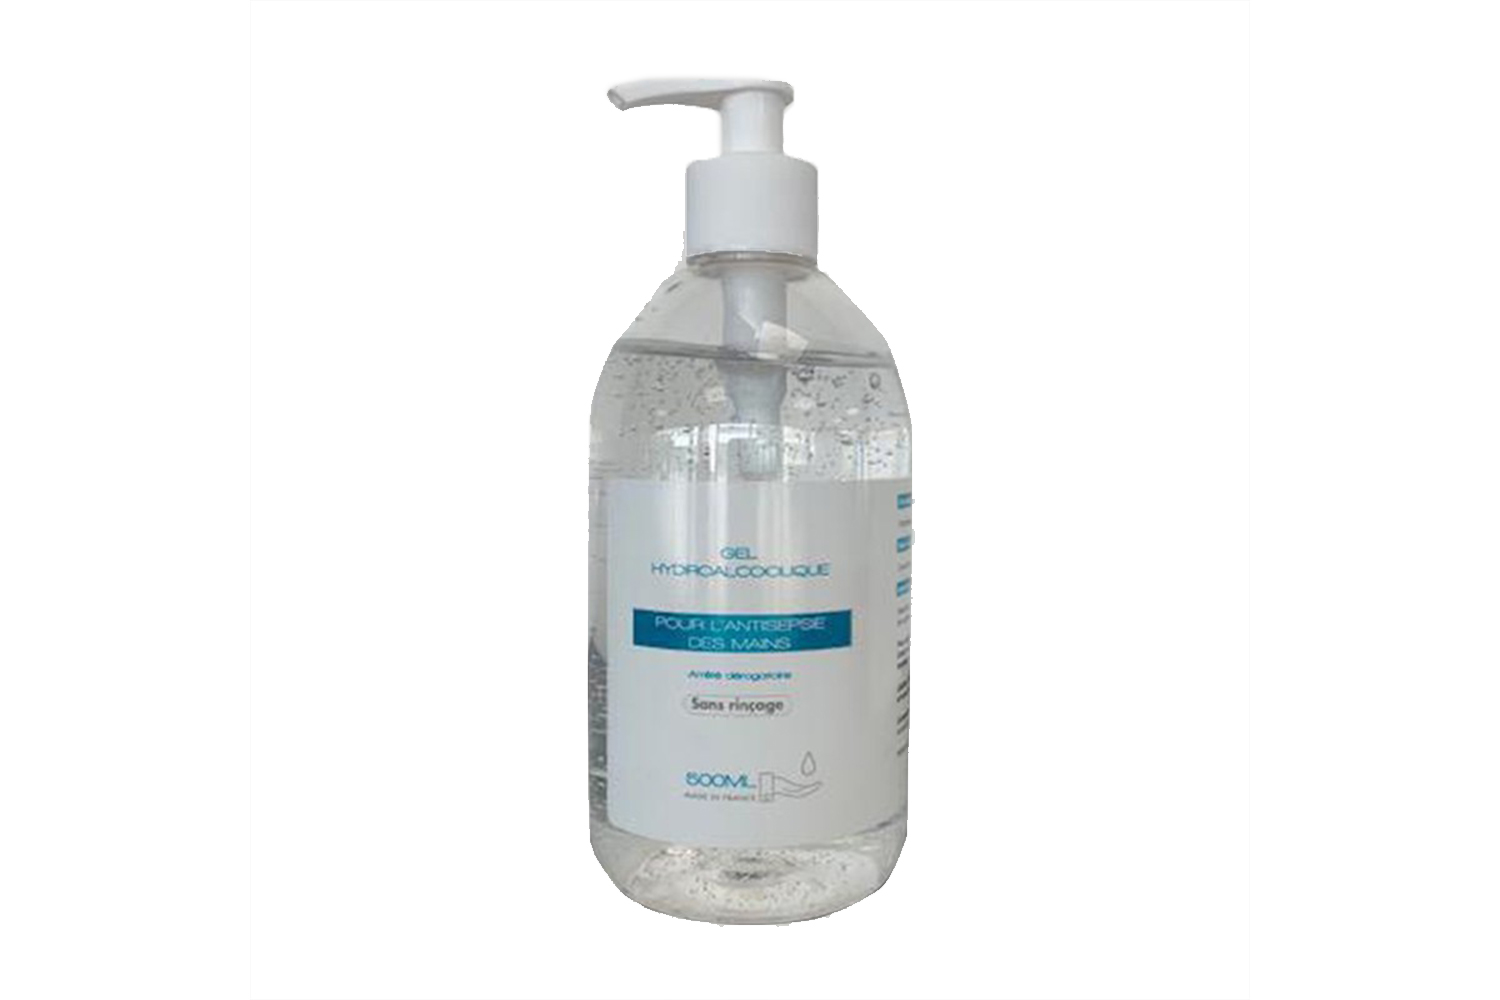 images/j2store/products/diffusees/86807-HYDRO-ALCOHOLIC-GEL-500ML.jpg